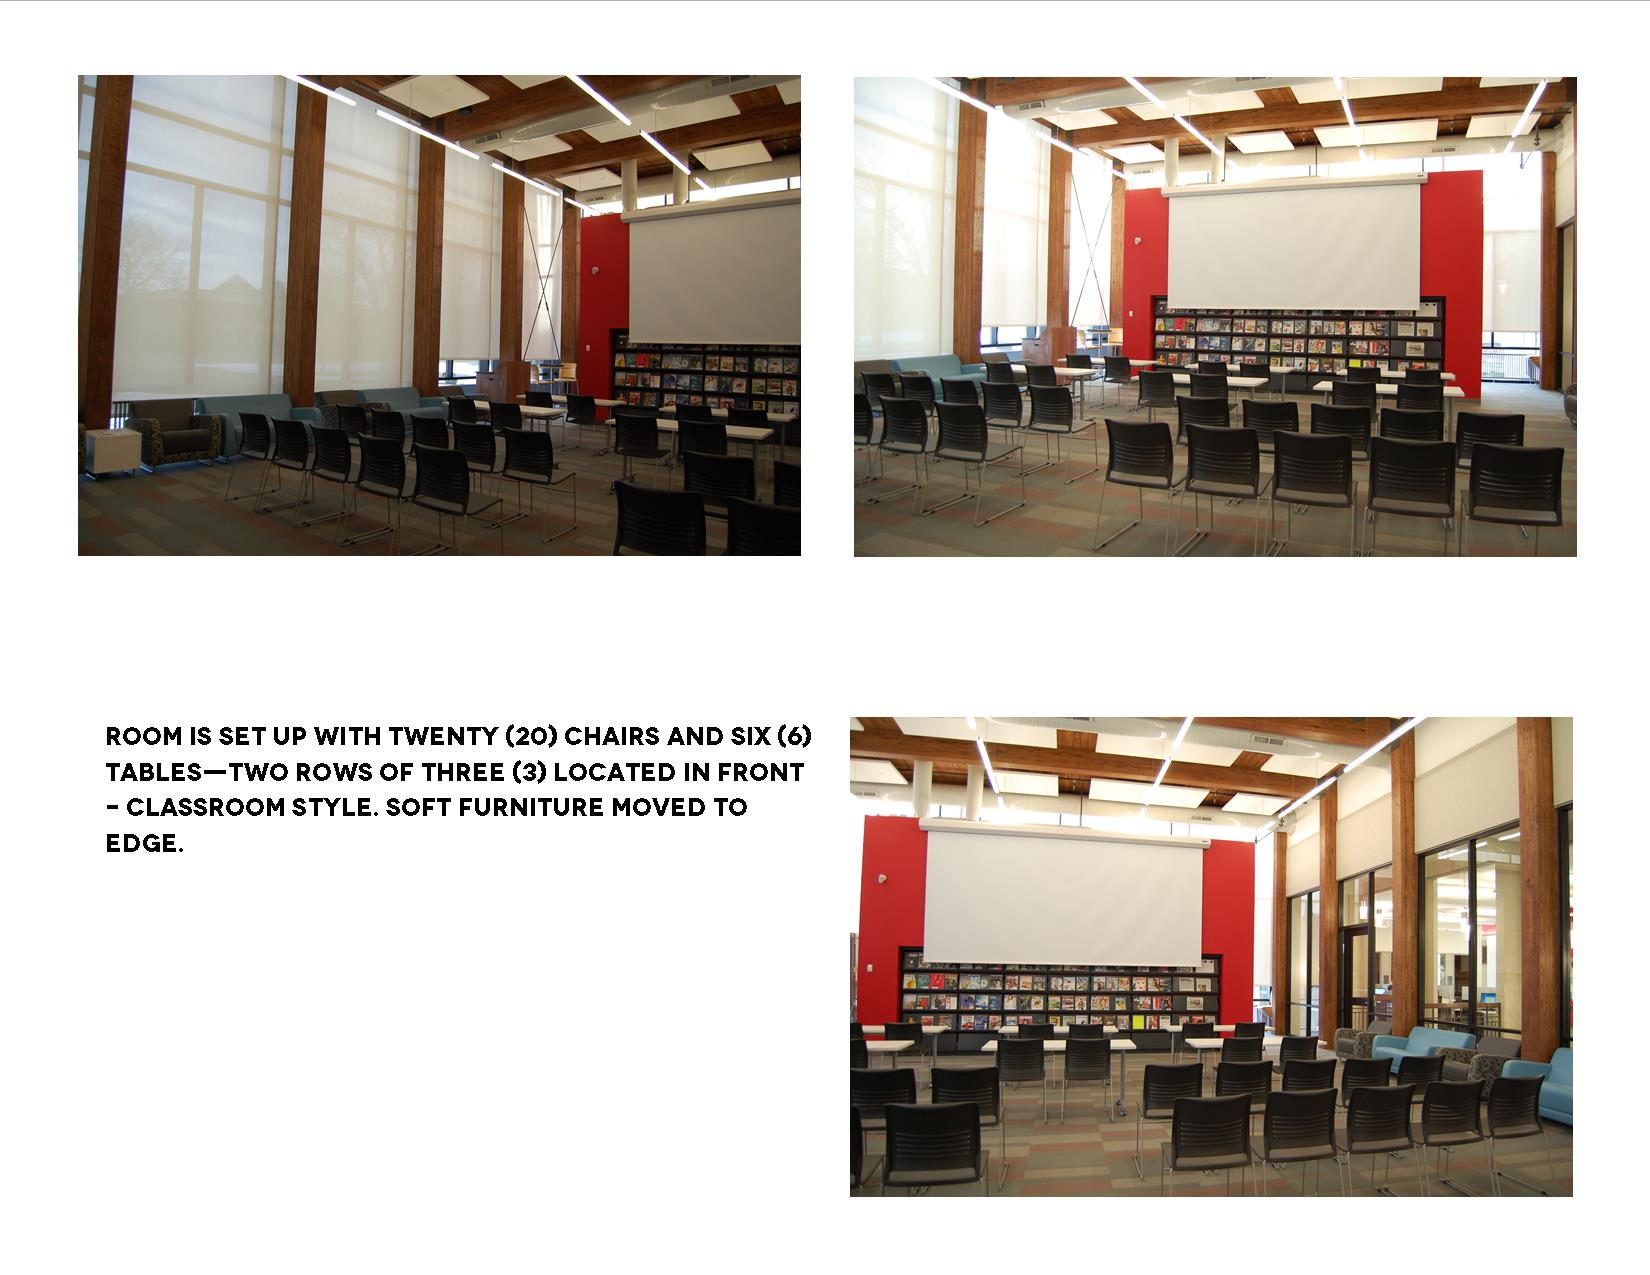 Room is set up with 20 chairs and 6 tables -- 2 rows of 3 located in front -- classroom style. Soft furniture moved to edge.